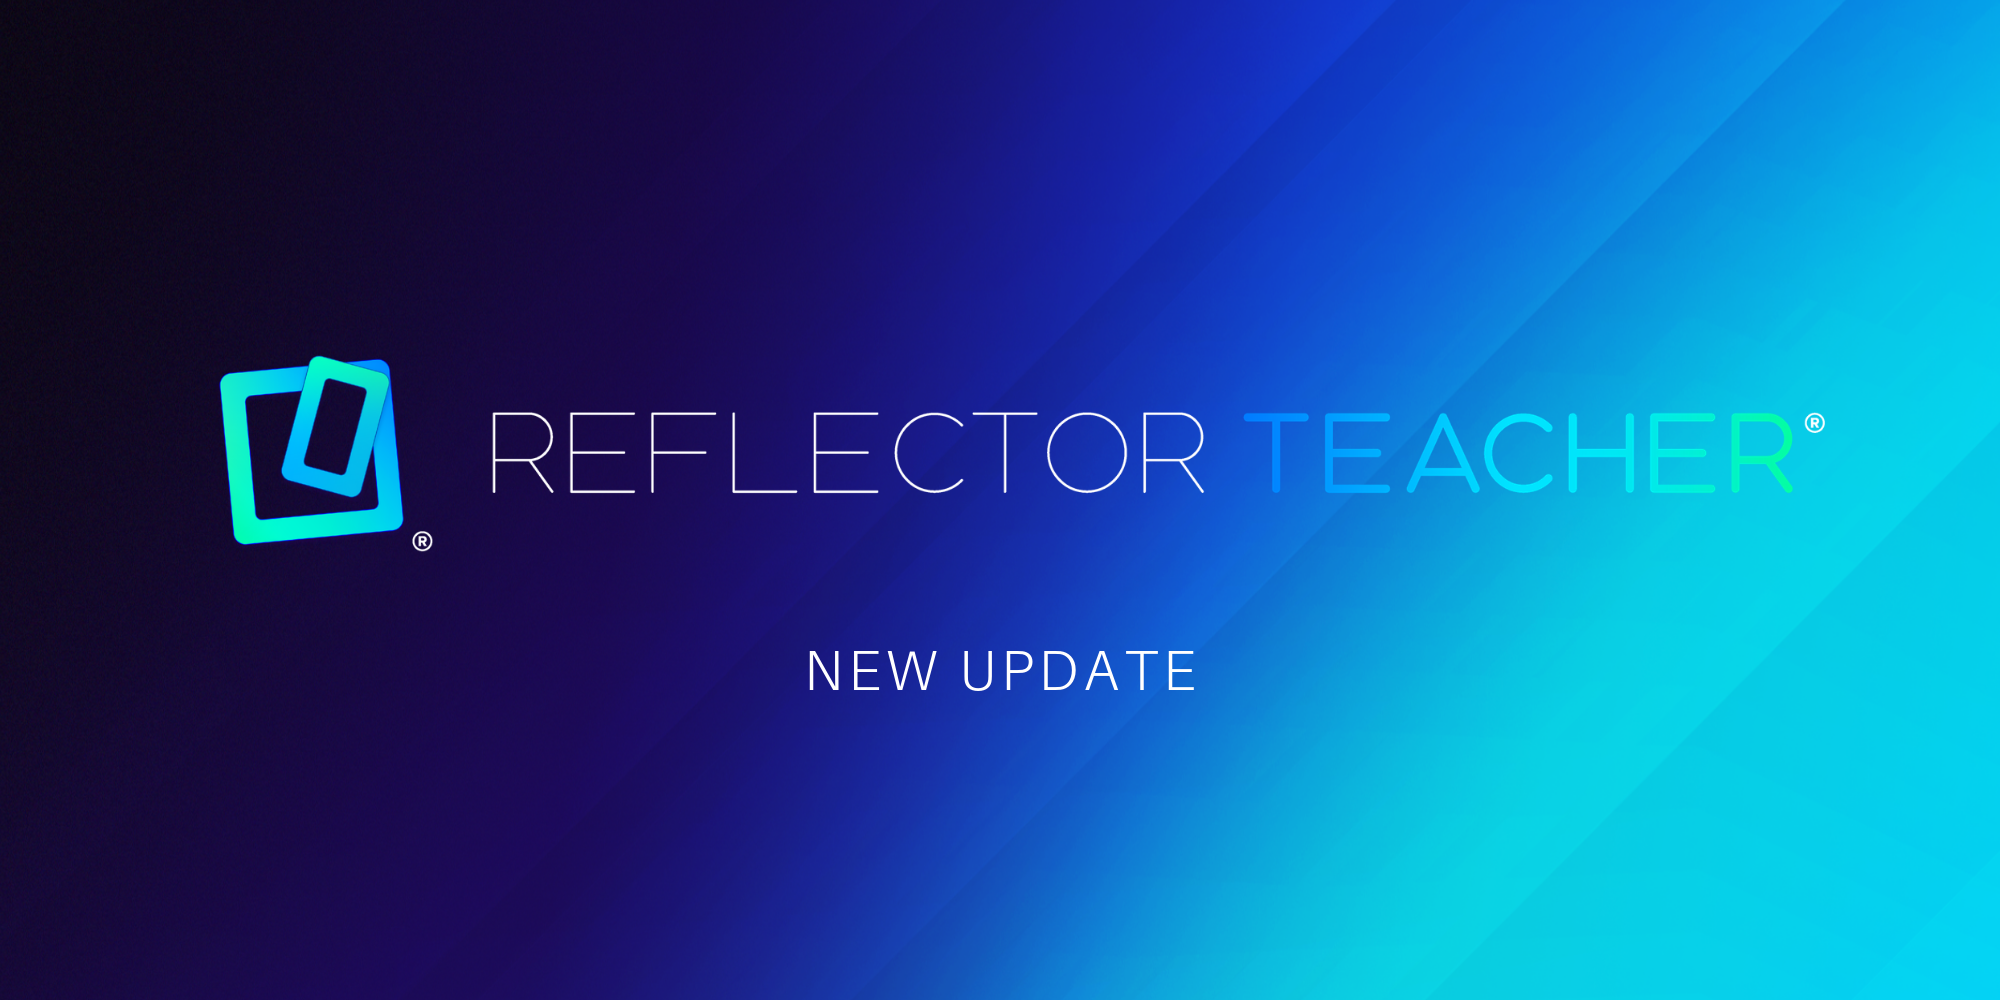 Reflector Teacher New Update